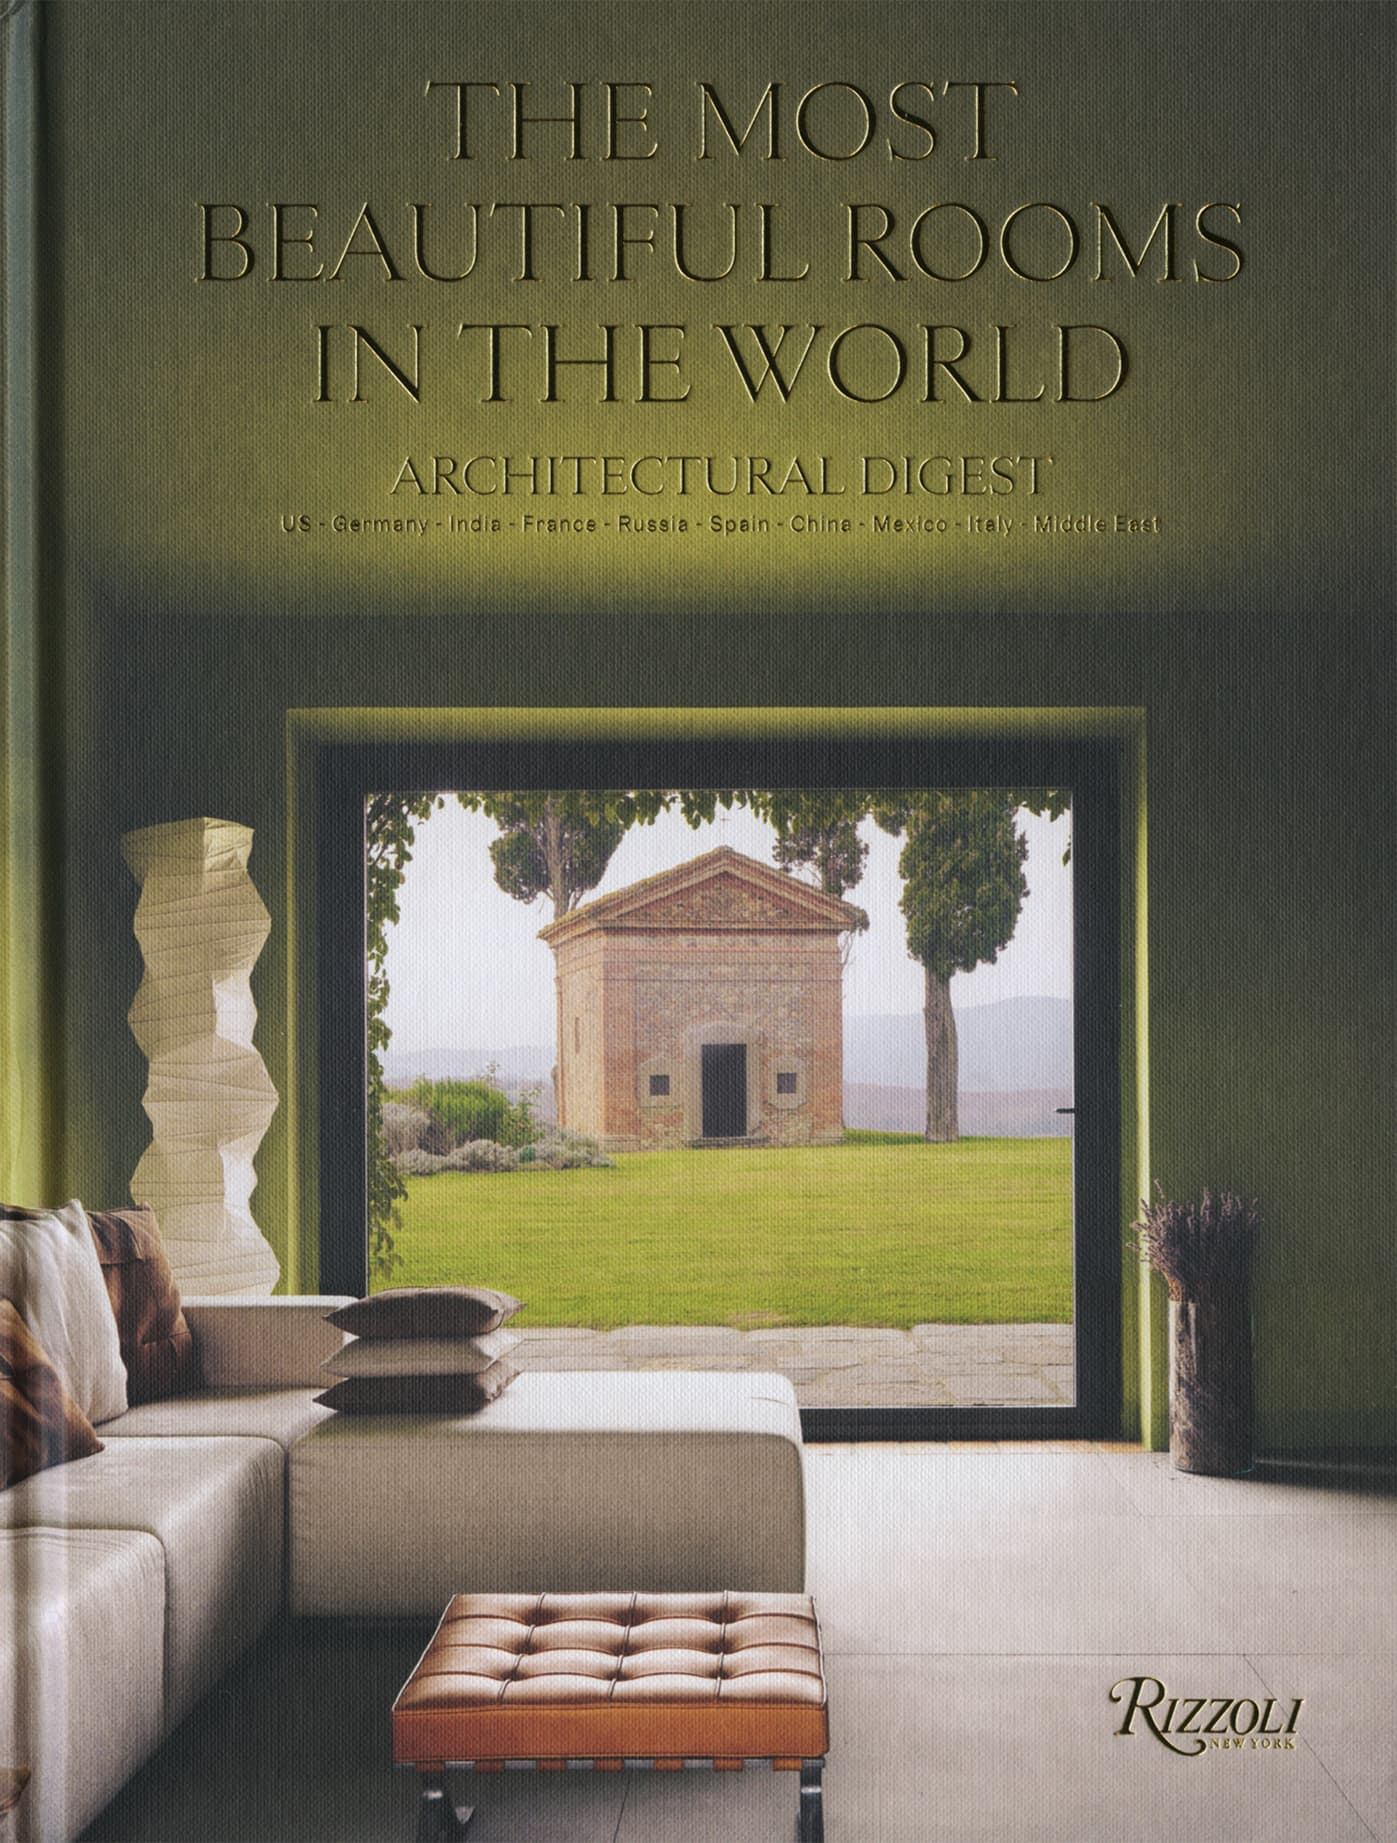 AD - The most beautiful rooms in the world